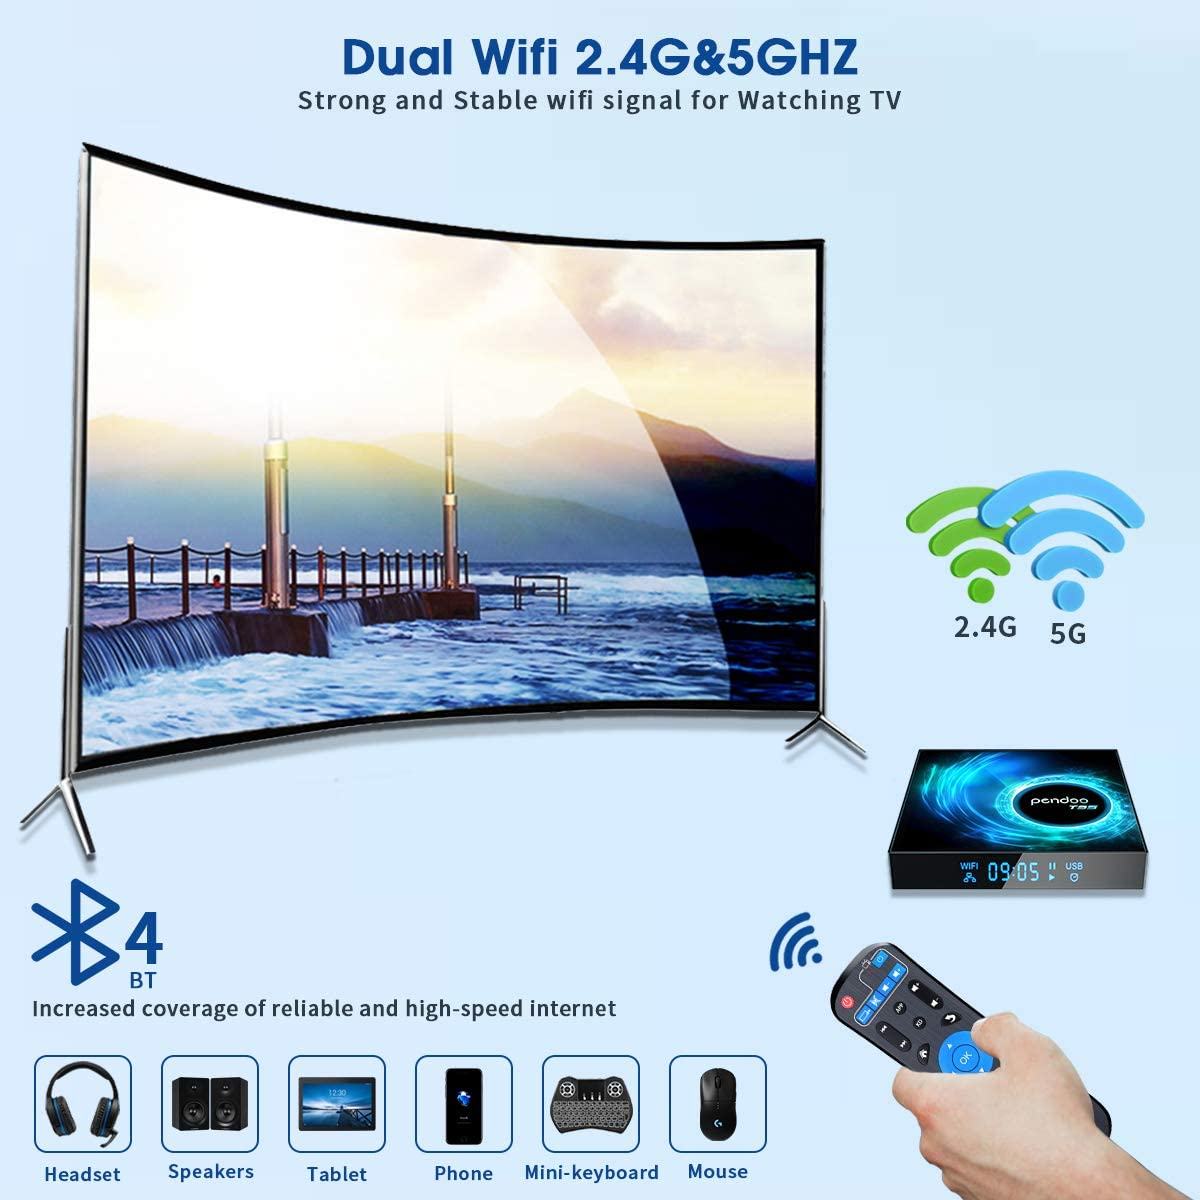 Android TV Box 10.0, 2021 Upgraded Android TV Box 4GB 32GB Allwinner H616 Quad-Core 64bit, Support 2.4G/5.8GHz WiFi & BT 4.2 with 3D/4K Utral HD/H.265 Android Box